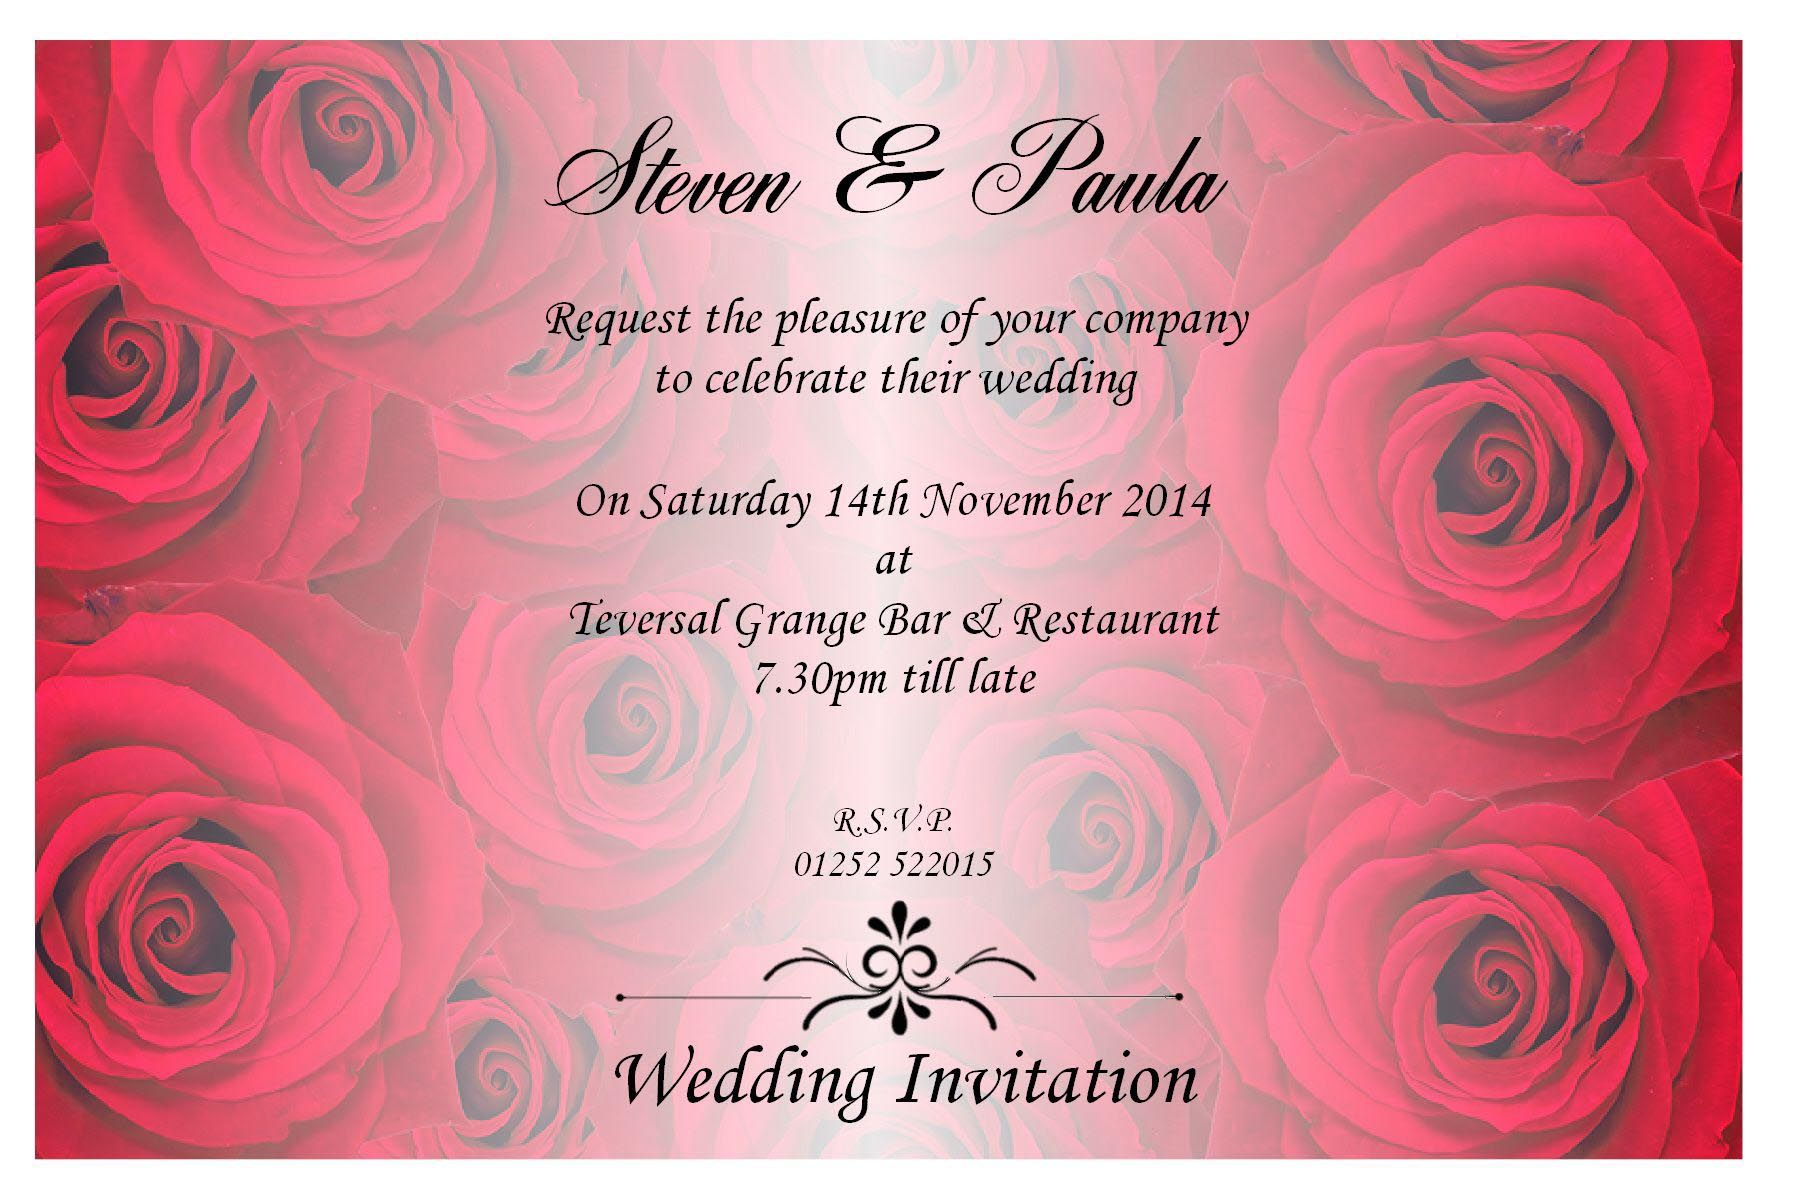 Wedding Invitation Templates | Wedding Invitation Design Quotes ...